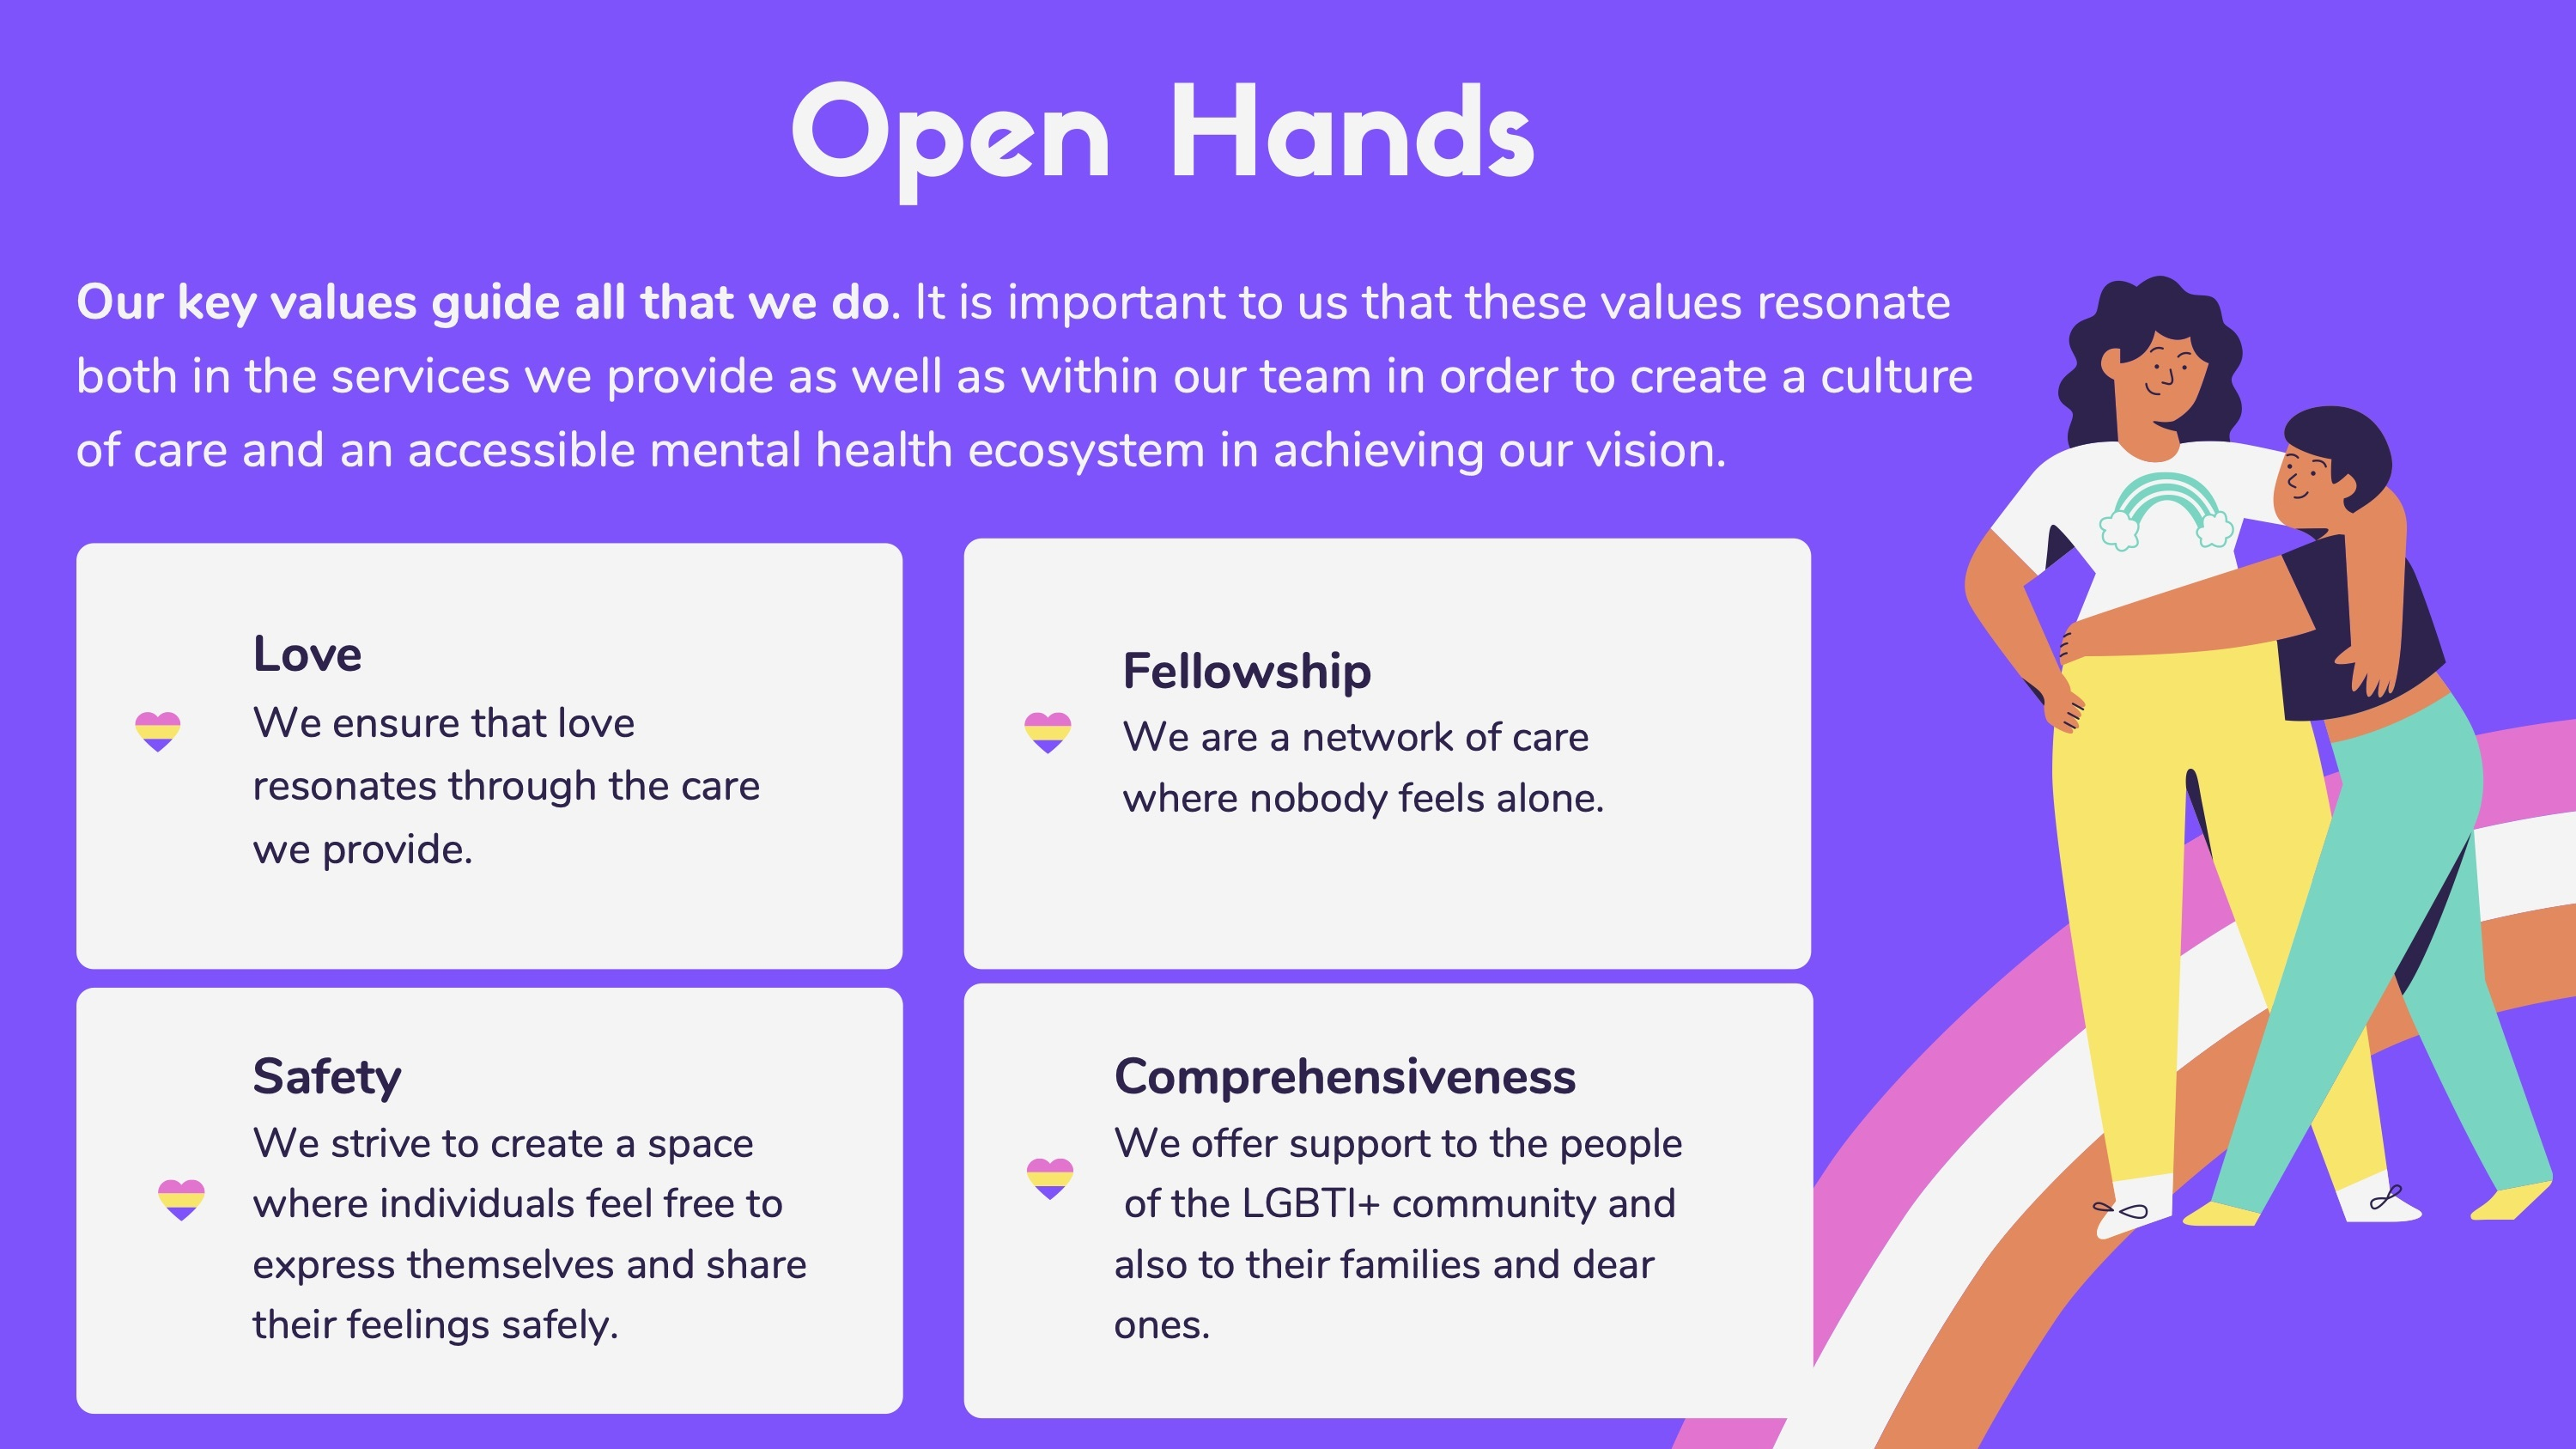 Open Hands values session